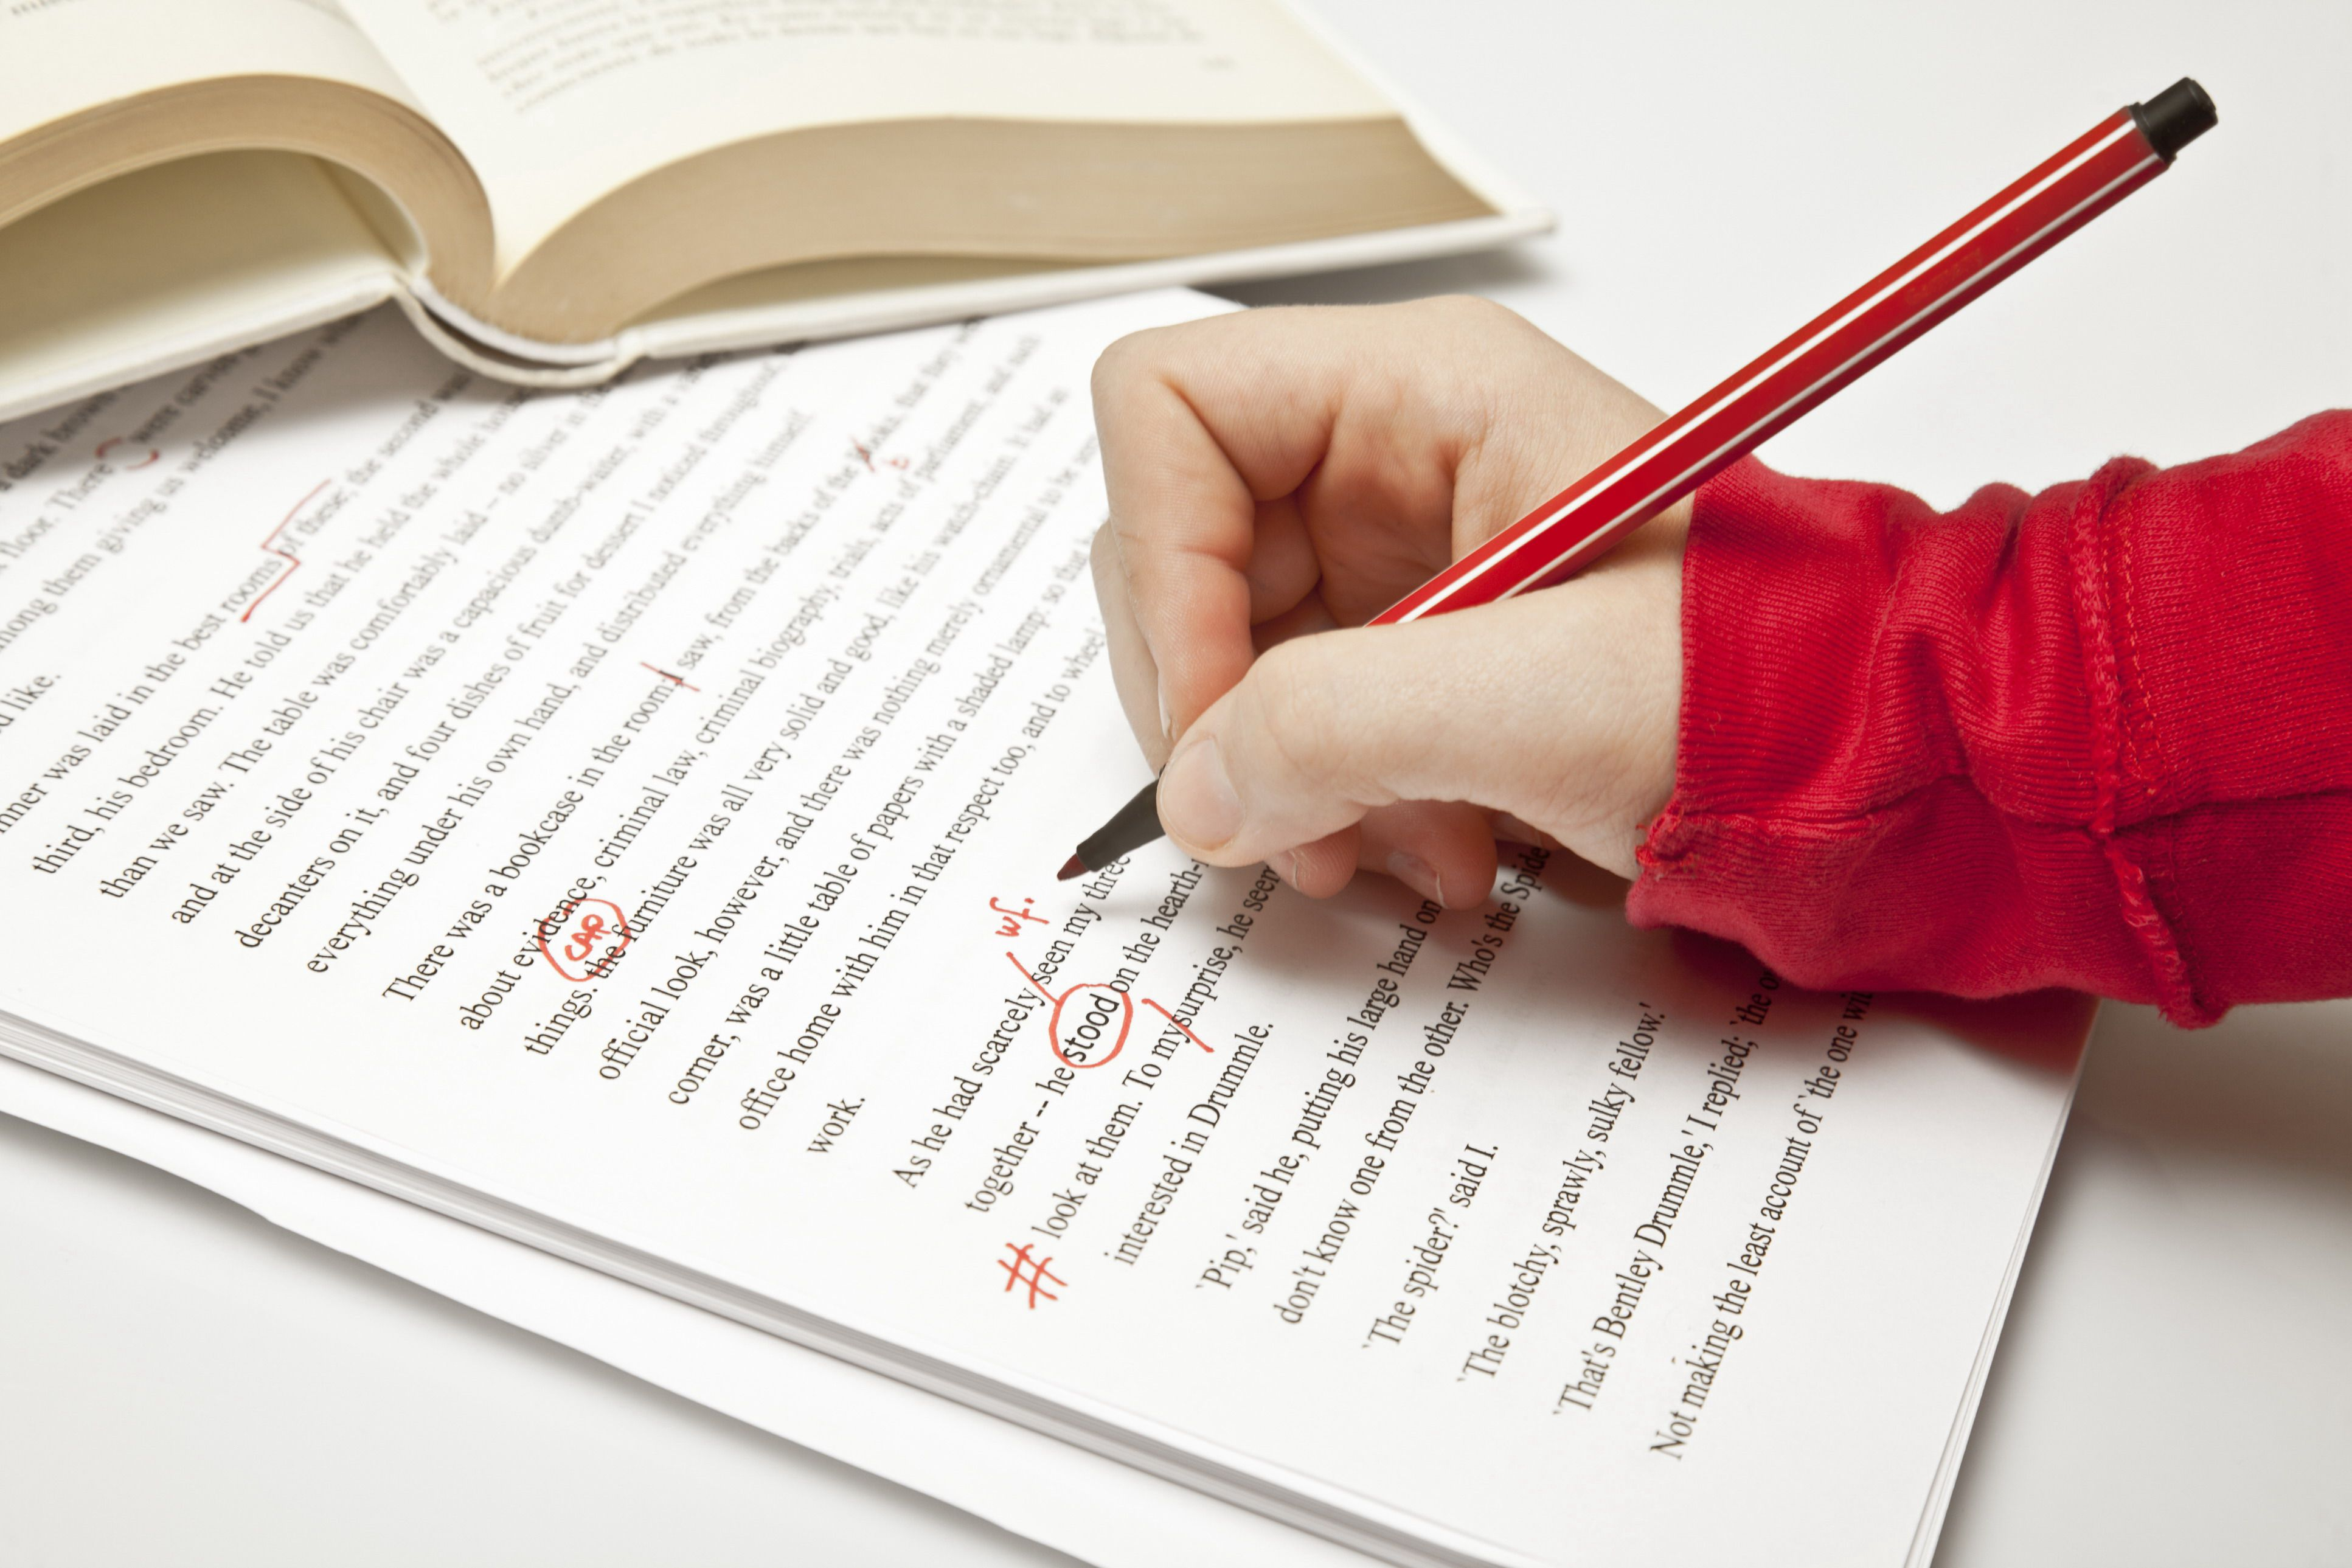 proofreading strategies in composition what are the best ways to proof effectively